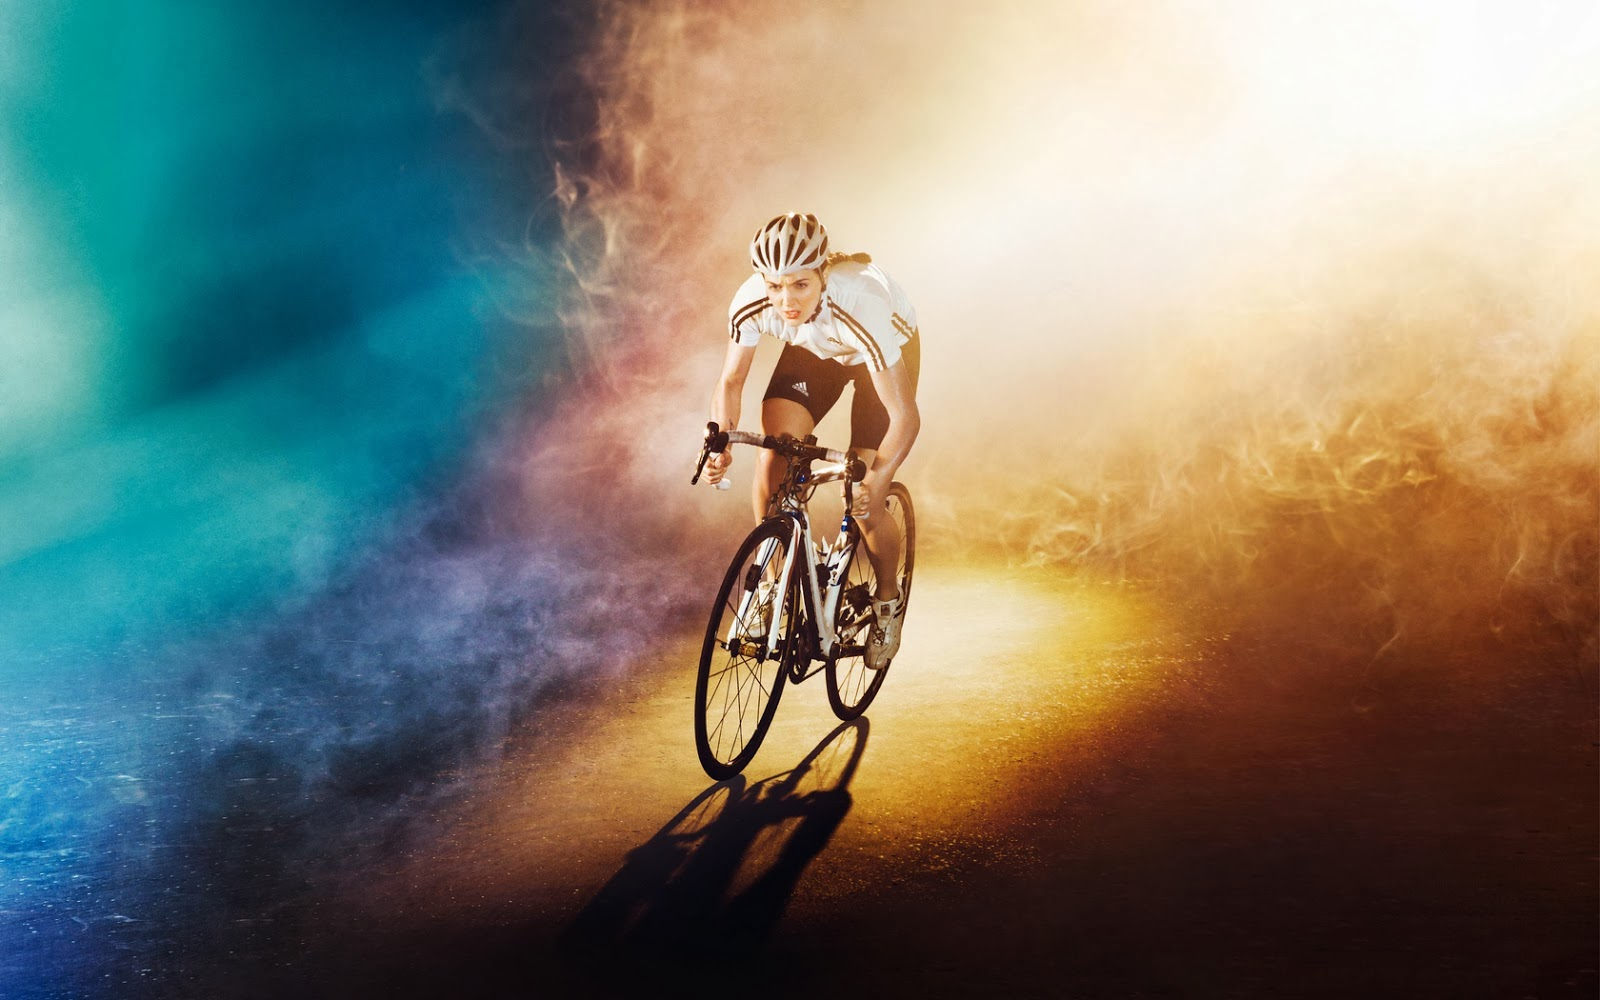 Cycling hd wallpapers ~ HD WALLPAPERS